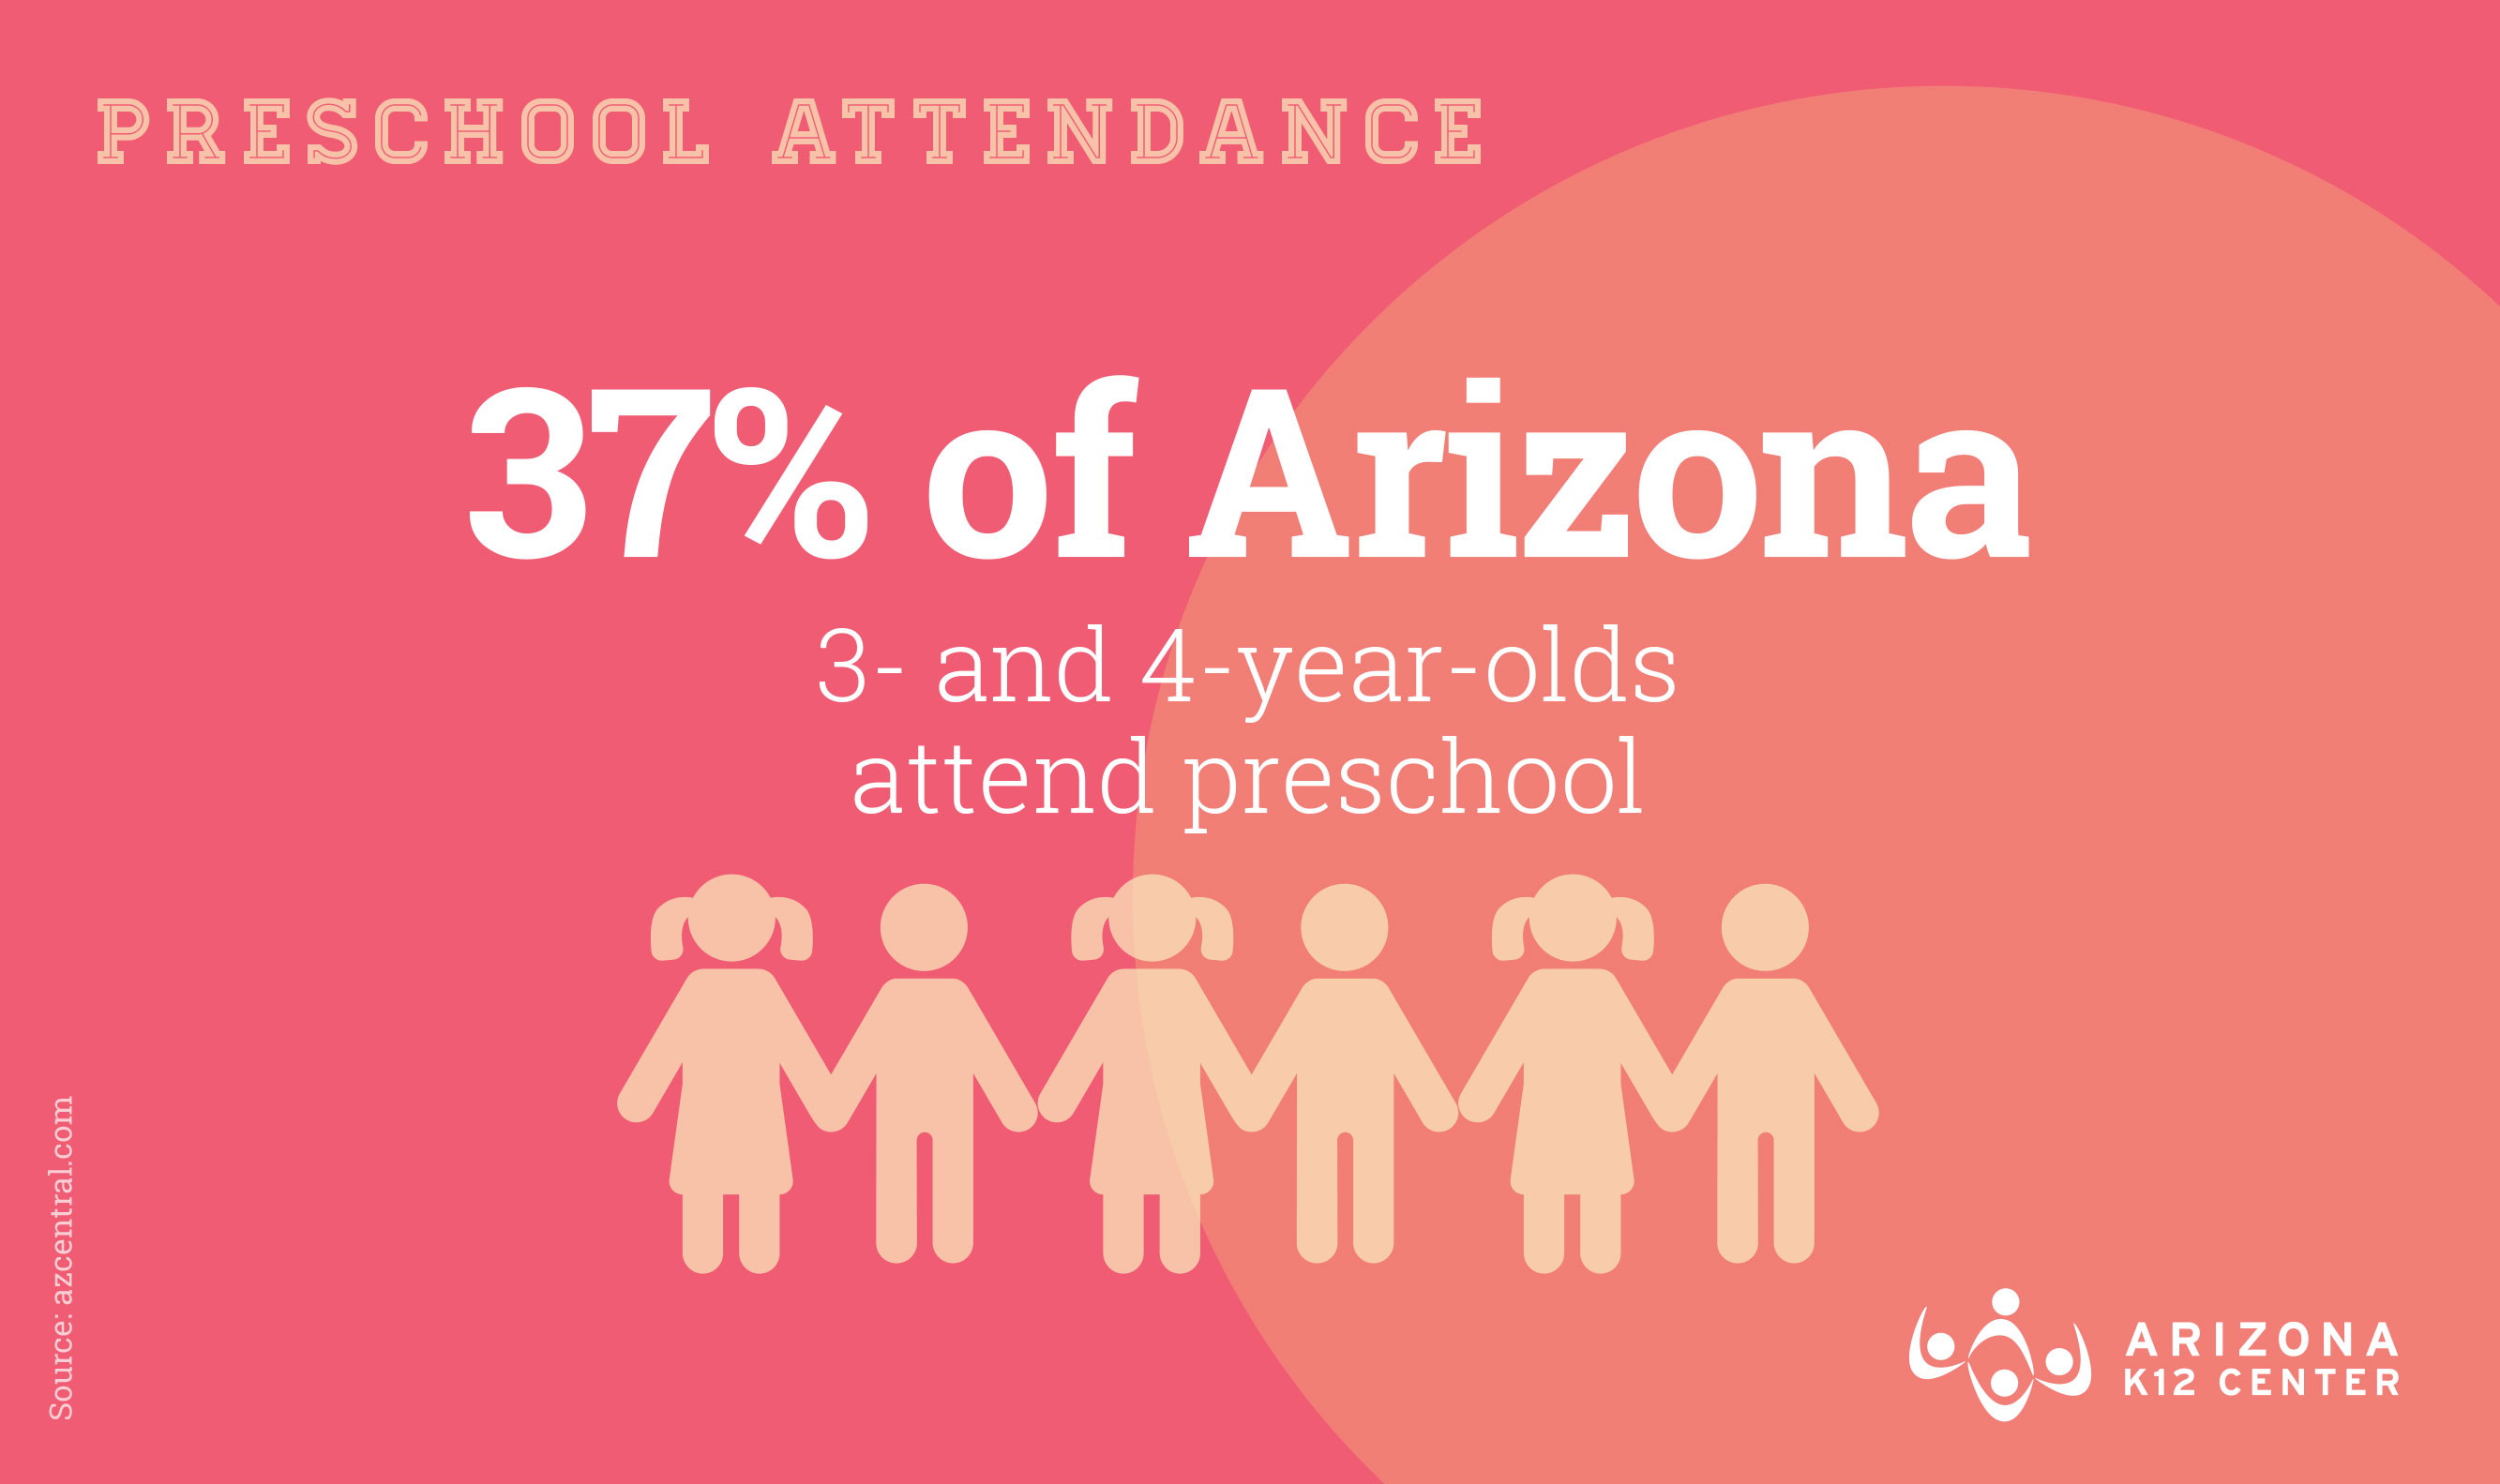 Arizona Falls Behind on Preschool Enrollment (and Why That Matters)